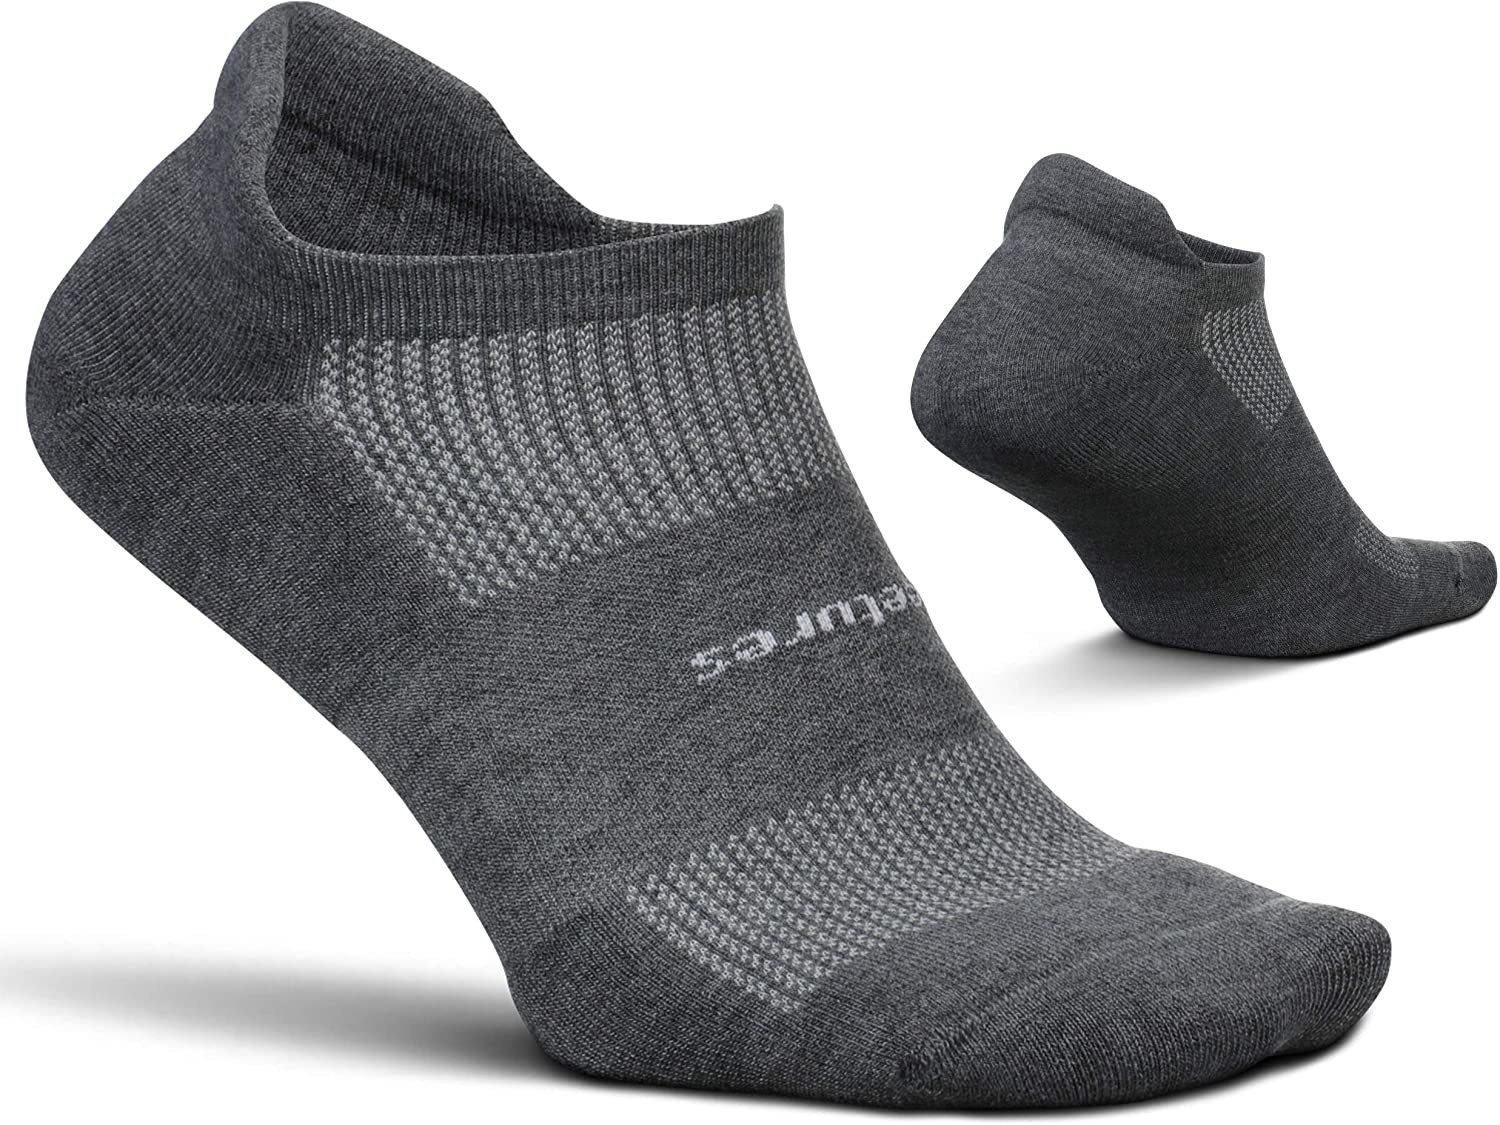 The socks in grey with a white stripe pattern across the top and a grey band around the middle